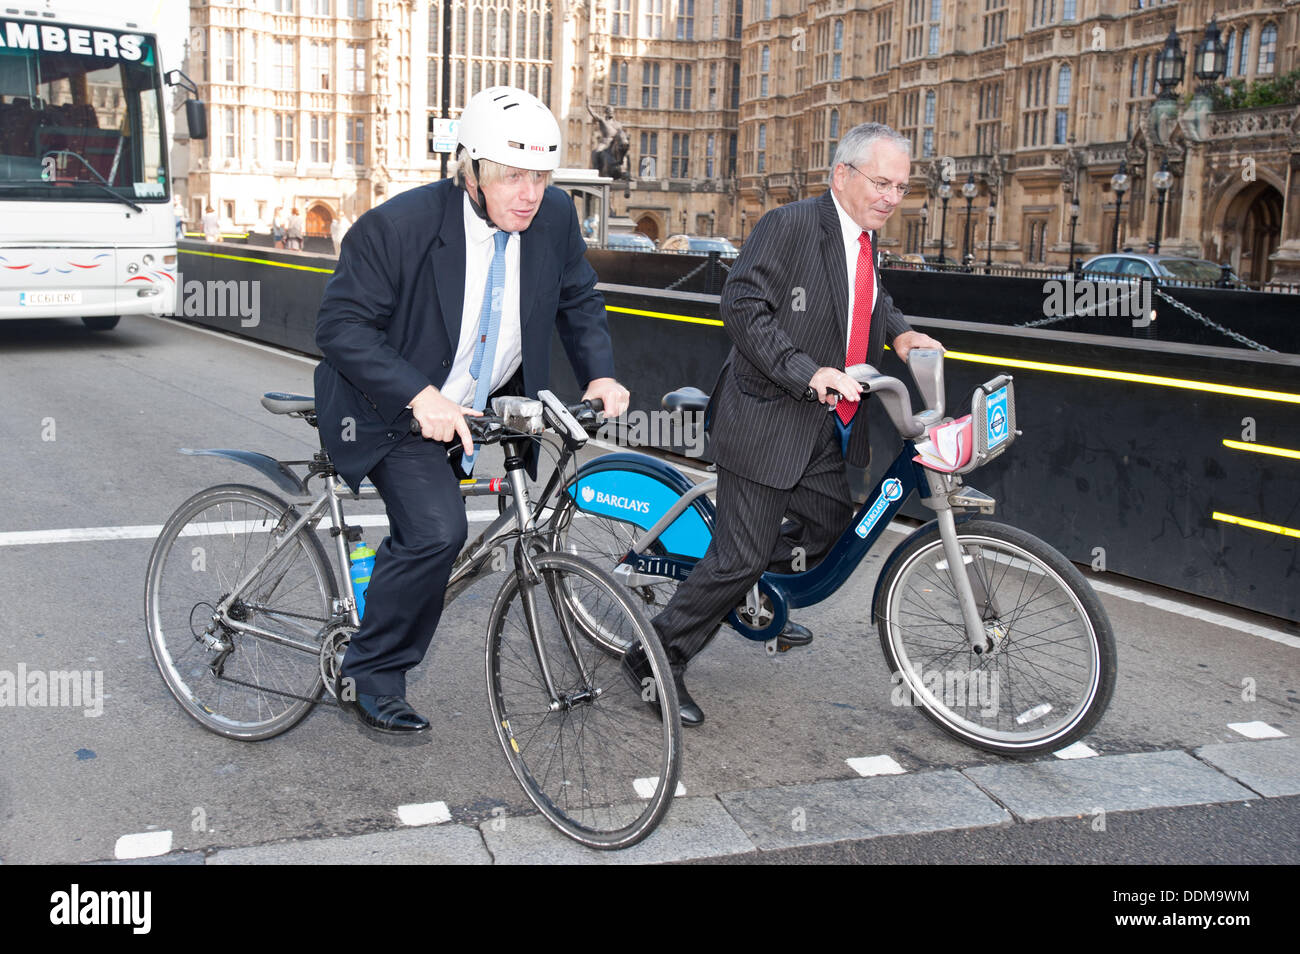 London, UK - 4 September 2013: the Mayor of London Boris Johnson and the London's Transport Commissioner, Sir Peter Hendy, ride their bikes in Westminster after unveiling a number of measures to tackle Heavy Goods Vehicle (HGV) safety as part of a joint effort to boost cycling in the capital. Credit:  Piero Cruciatti/Alamy Live News - Stock Image